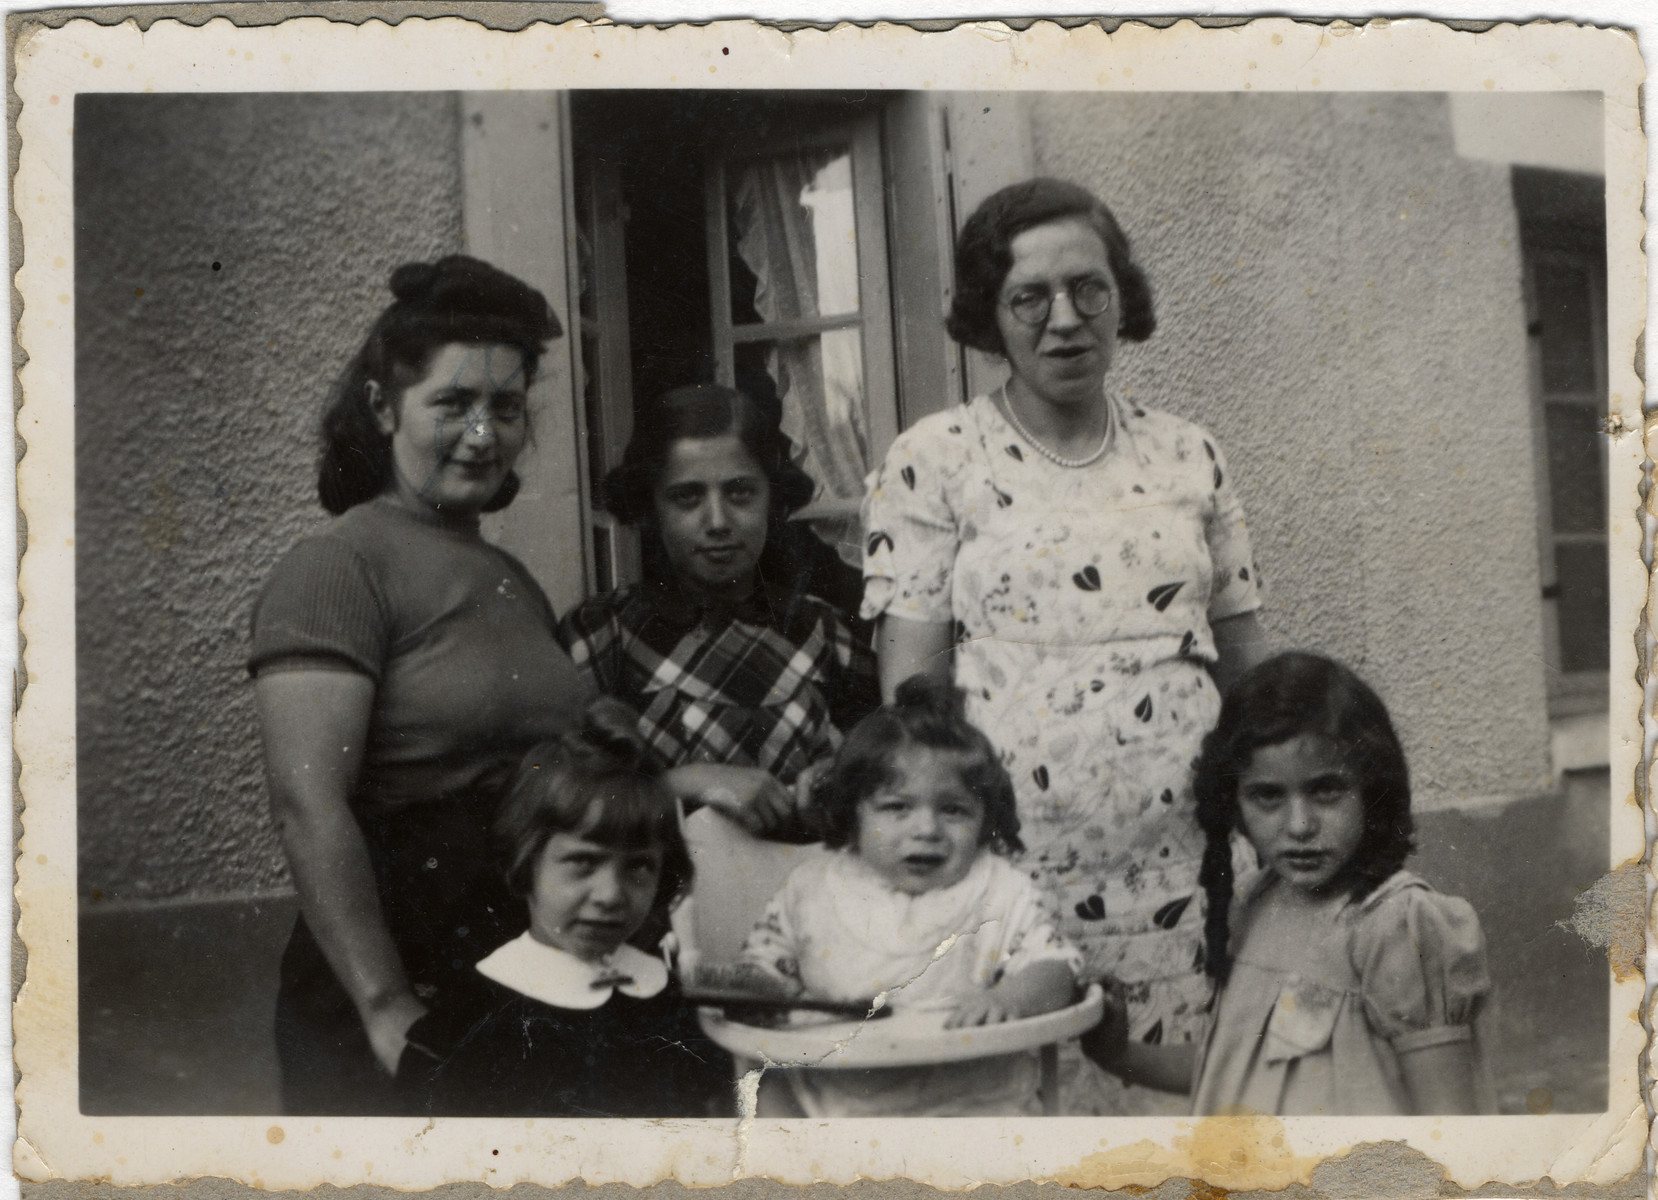 Group portrait of an extended Jewish family taken in front of the house of Jacques Gimelstein  in Mesnil Esnard.  Pictured from left to right, Rachel Suganas Gimelstein (aunt of the donors), her daughter Paulette Gimelstein, and Rachel Gimelstein Feiler.  Below are Solange Gimelstein, Michel Feiler, and Annette Gimelstein.